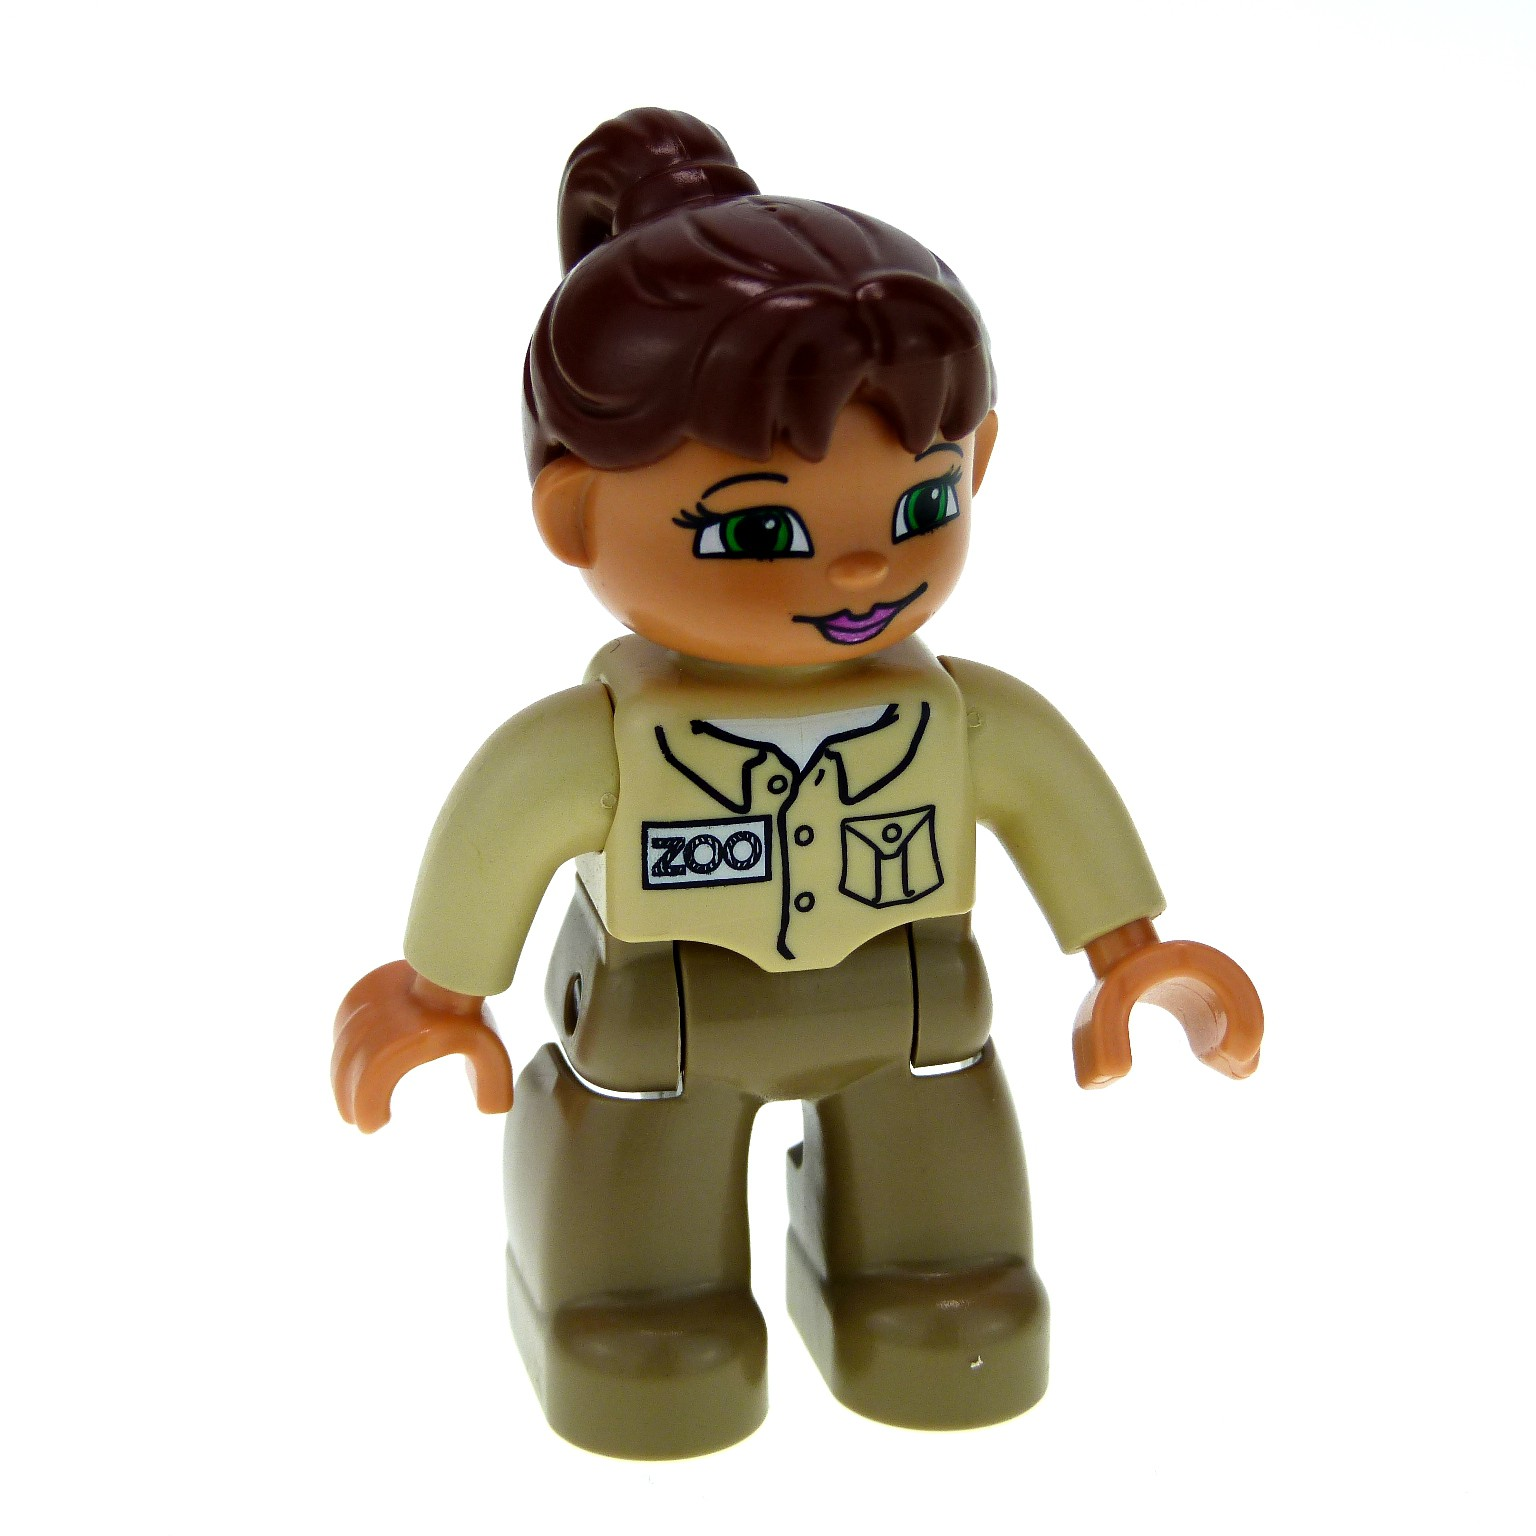 1 x lego duplo figur frau mutter hose dunkel beige jacke beige haare zopf braun zoo w rterin f r. Black Bedroom Furniture Sets. Home Design Ideas